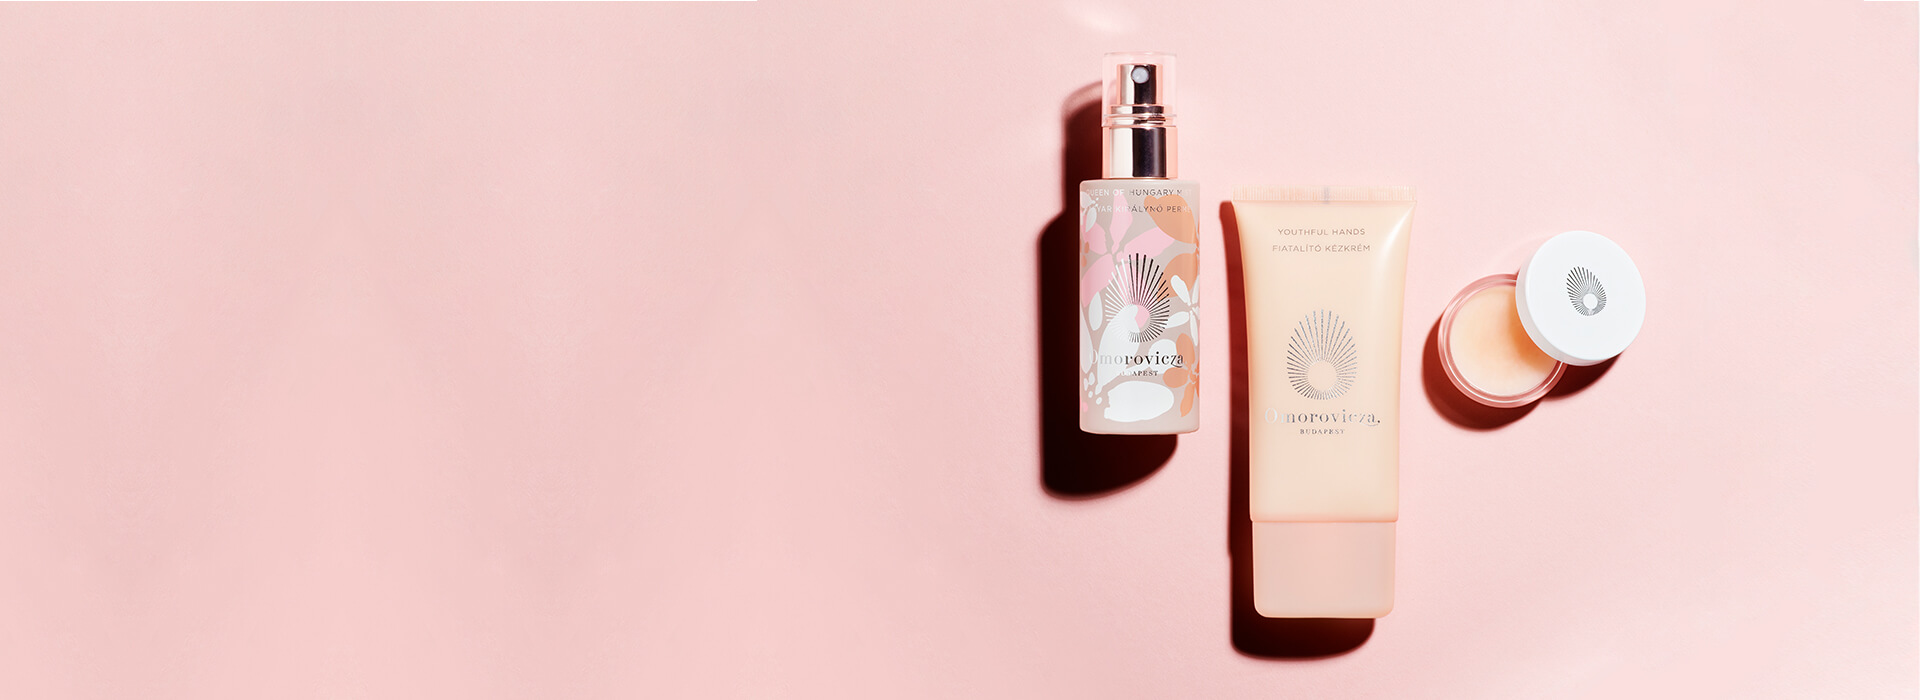 Mother's Day Trio - Youthful hands, perfecting lip balm, queen of hungary mist pink flowers.